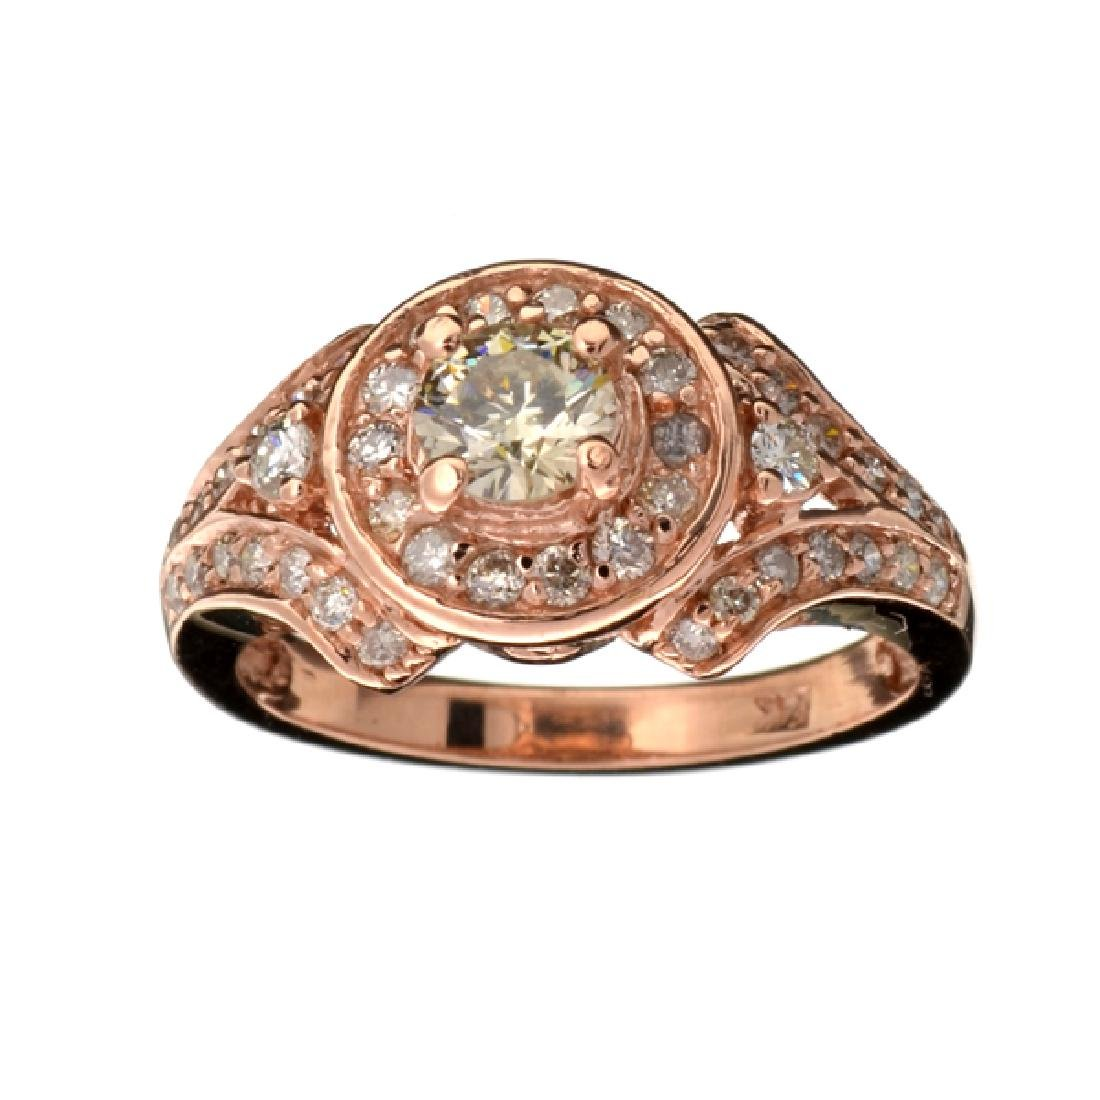 APP: 8.7k Fine Jewelry 14 kt. Rose Gold, 0.83CT Round